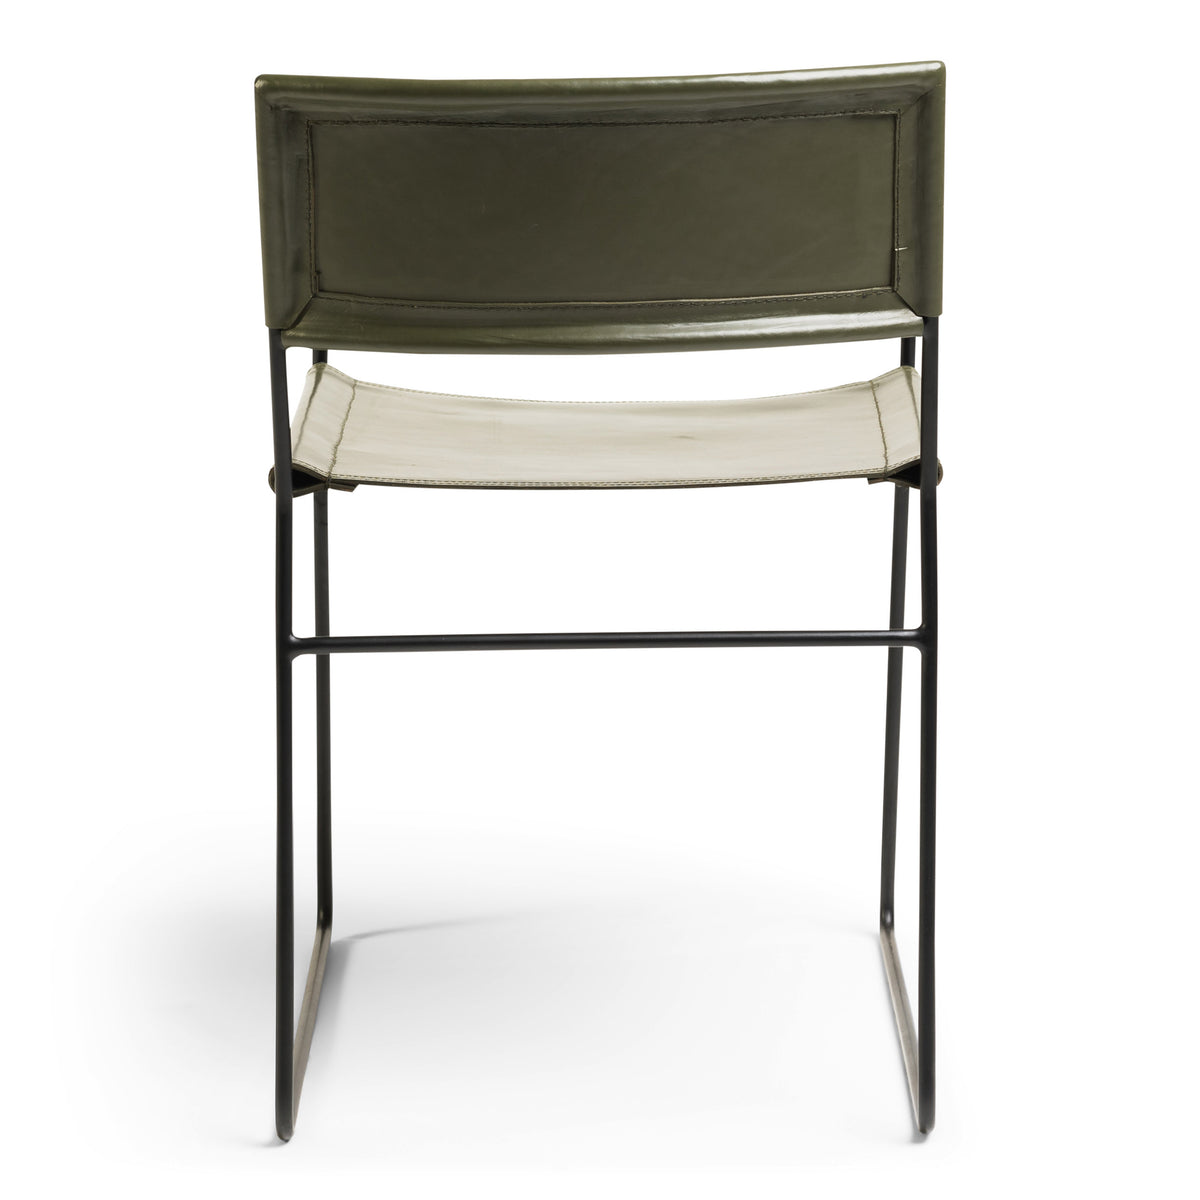 Boston Dining Chair - Olive